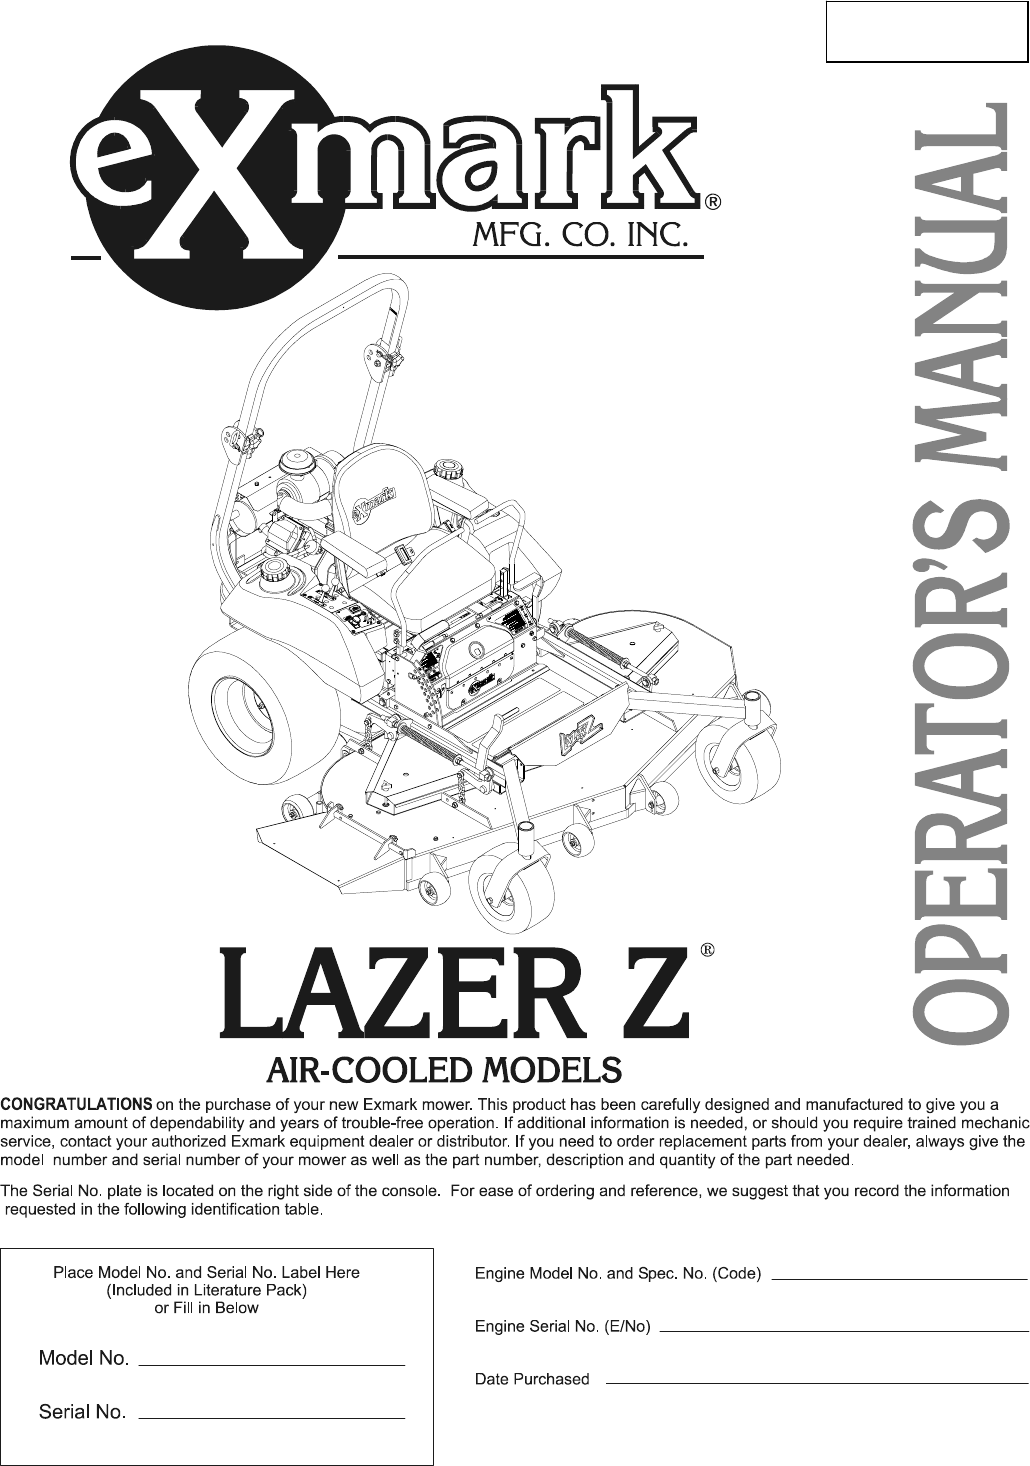 exmark lawn mower lazer z hp user guide manualsonline com for serial nos